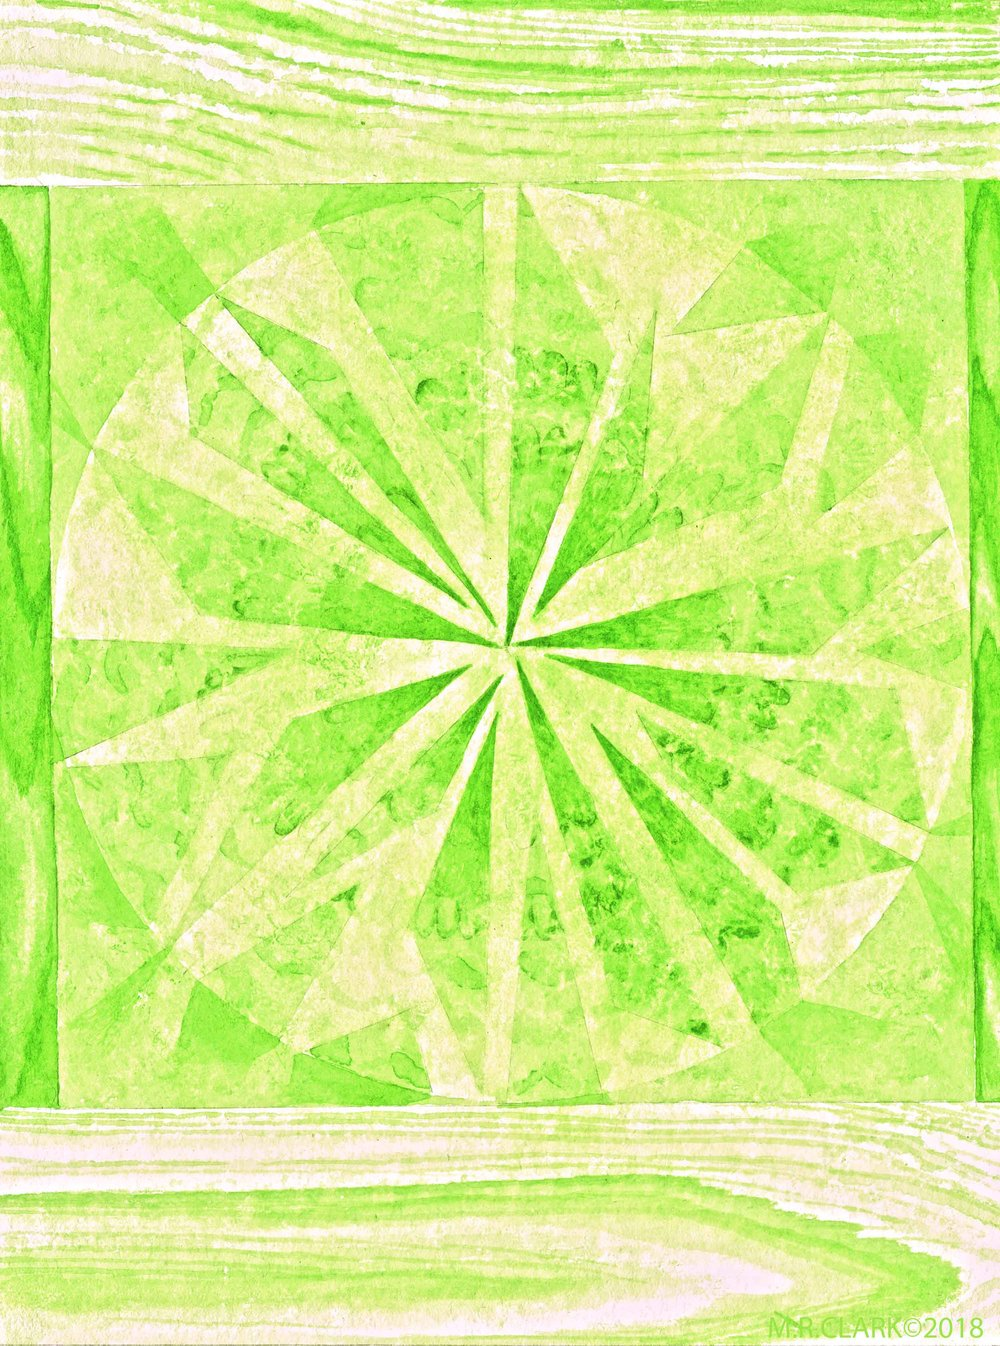 Color Project No. 11 is Permanent Green Light  This color wanted to disappear on the screen as if it was just too much to deal with. Like a fluorescent, it is quite a bright and vivid color. On my Daniel Smith tube it says it is a mix of Phthalo green PG7 and Hansa yellow PY3 so I could mix it myself really and don't need to keep a tube of it. Phthalo Green is very stable and lightfast and one of those synthetic colors that end up used in as many ways as can be imagined. Switch out that yellow for something deeper and you will get Hookers green.  Looks like I will be heading into some yellows now…